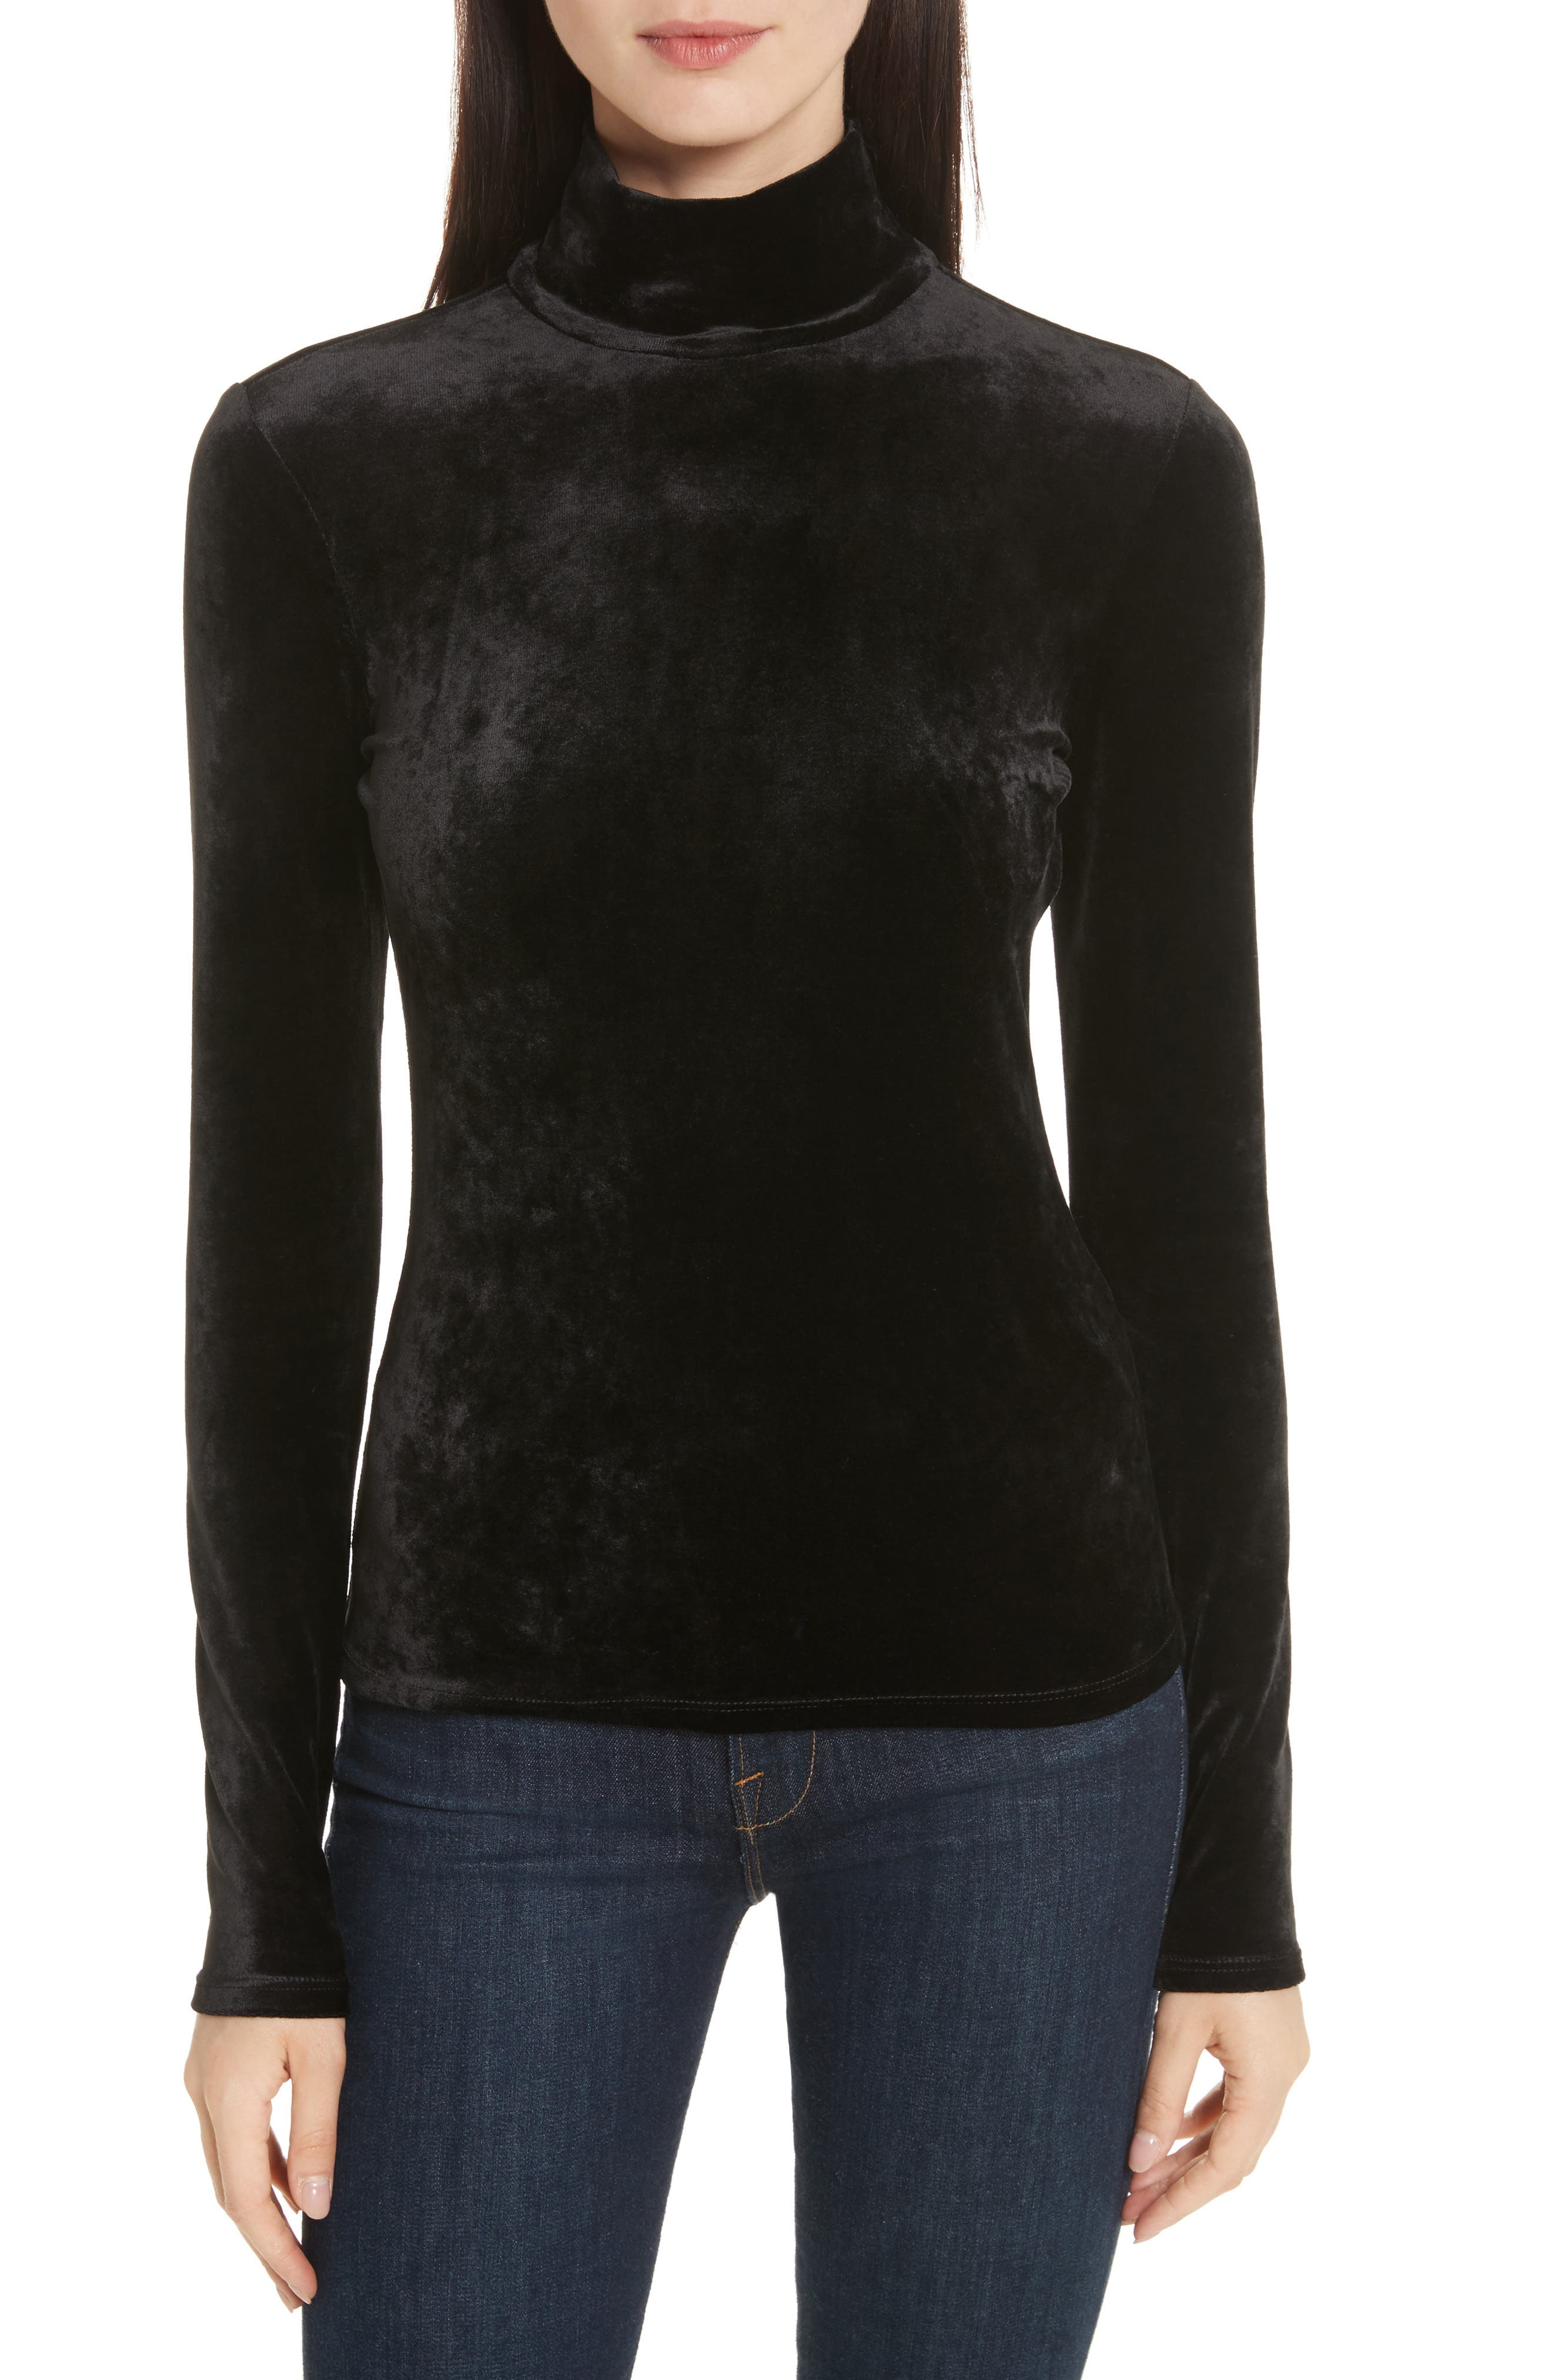 Alternate Image 1 Selected - Theory Velvet Turtleneck Top